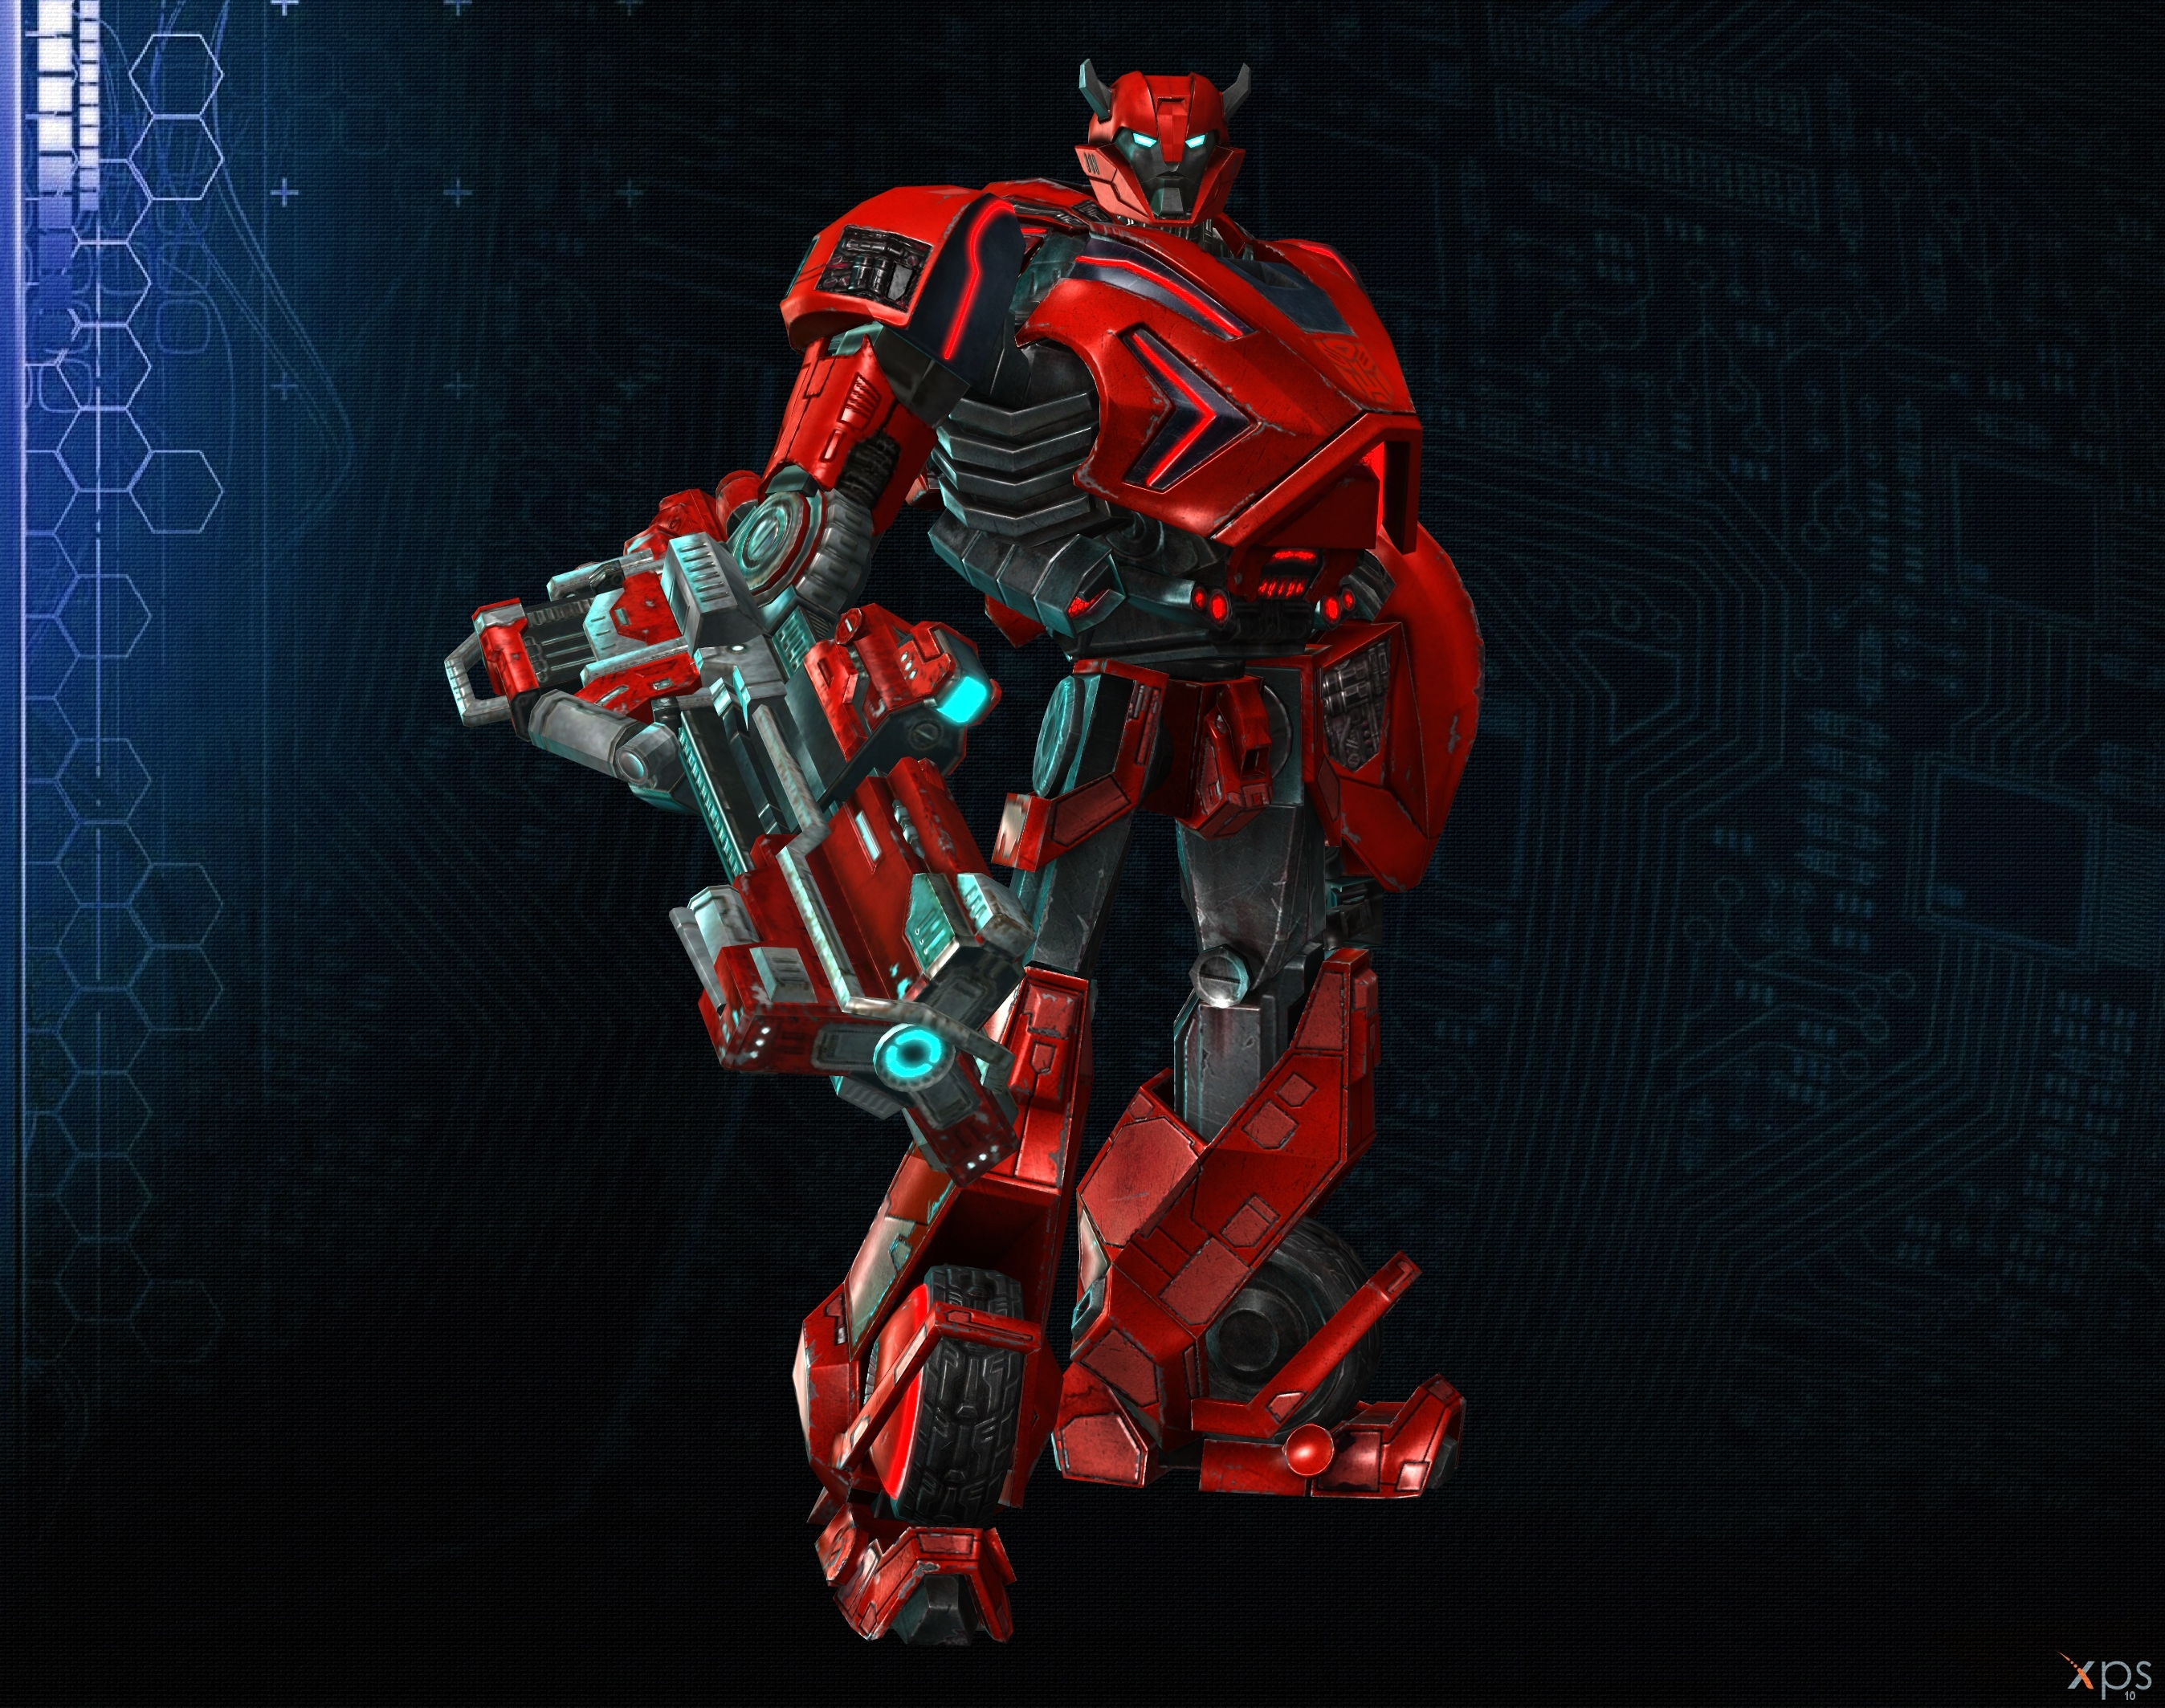 transformers cliffjumper rise of the dark spark